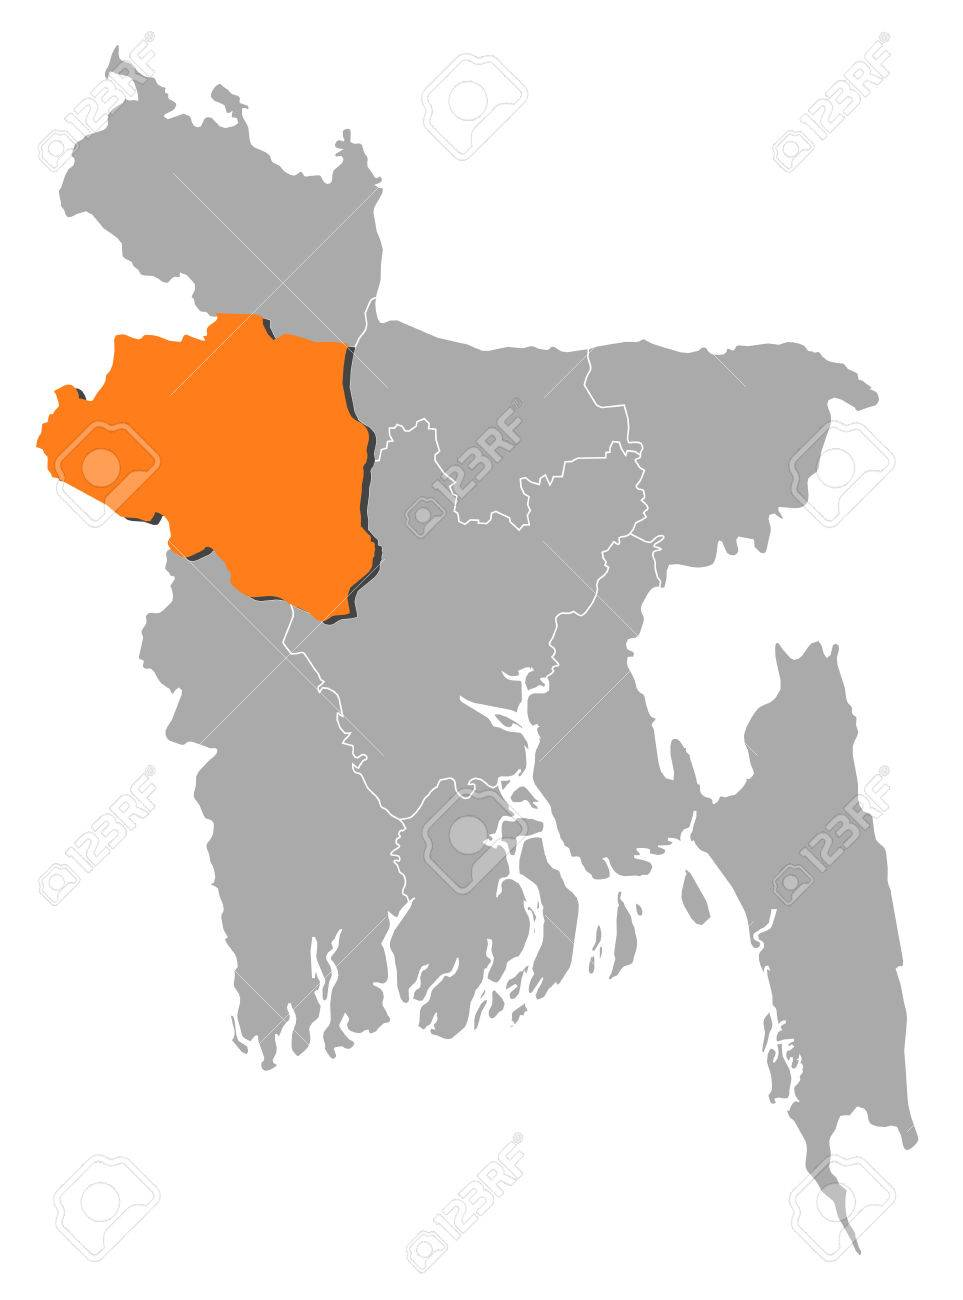 Map Of Bangladesh With The Provinces Rajshahi Is Highlighted